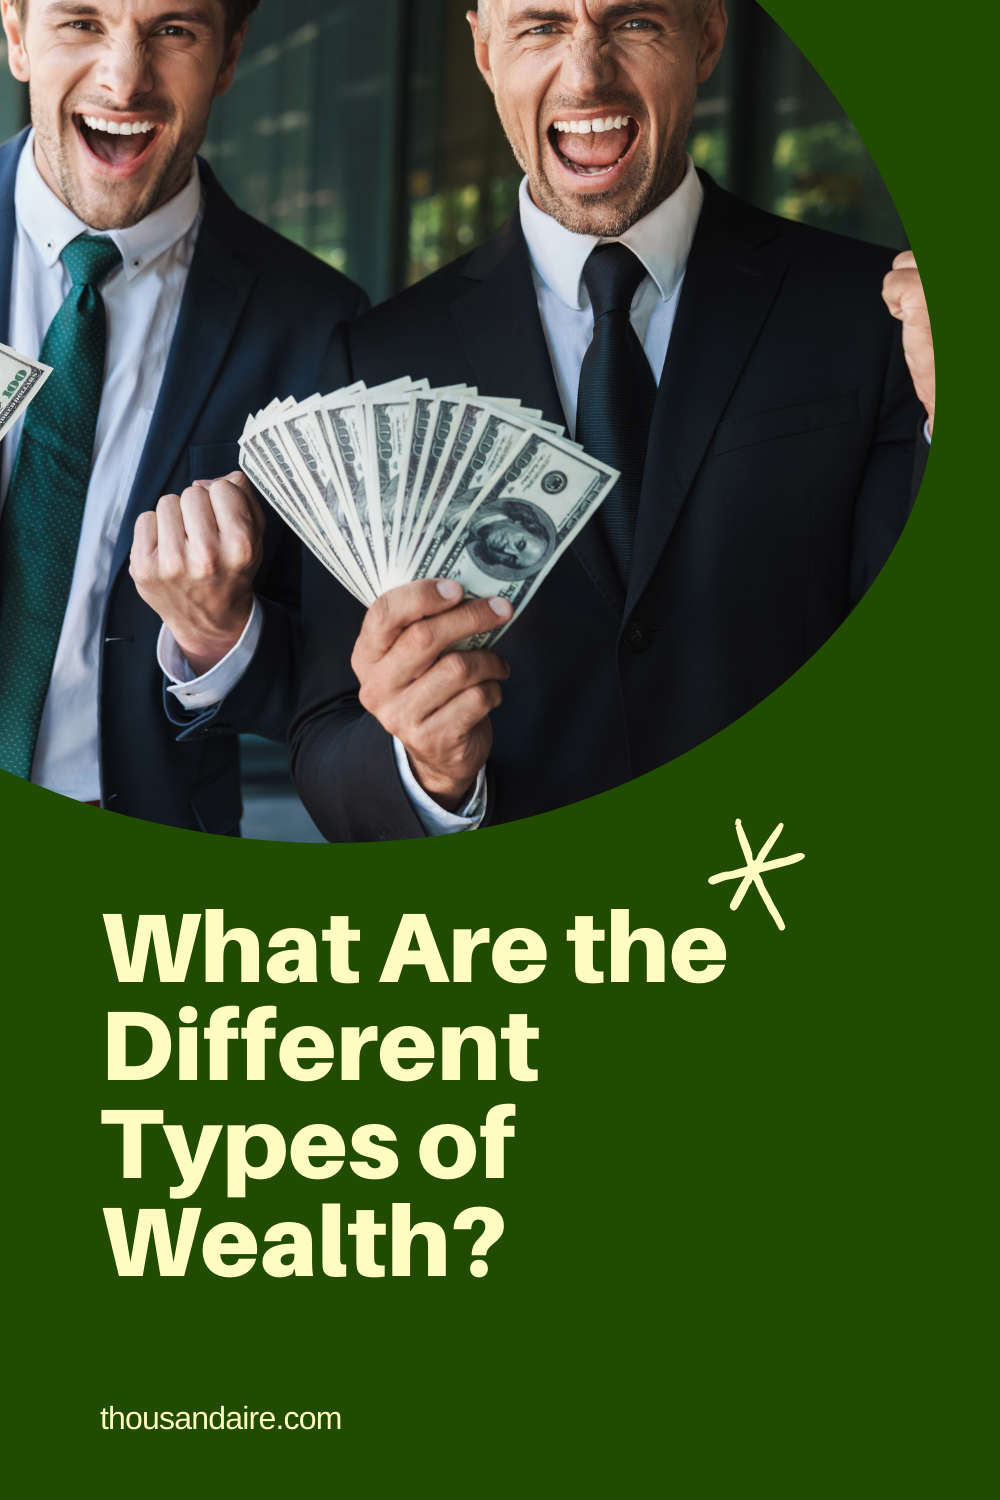 What Are the Different Types of Wealth